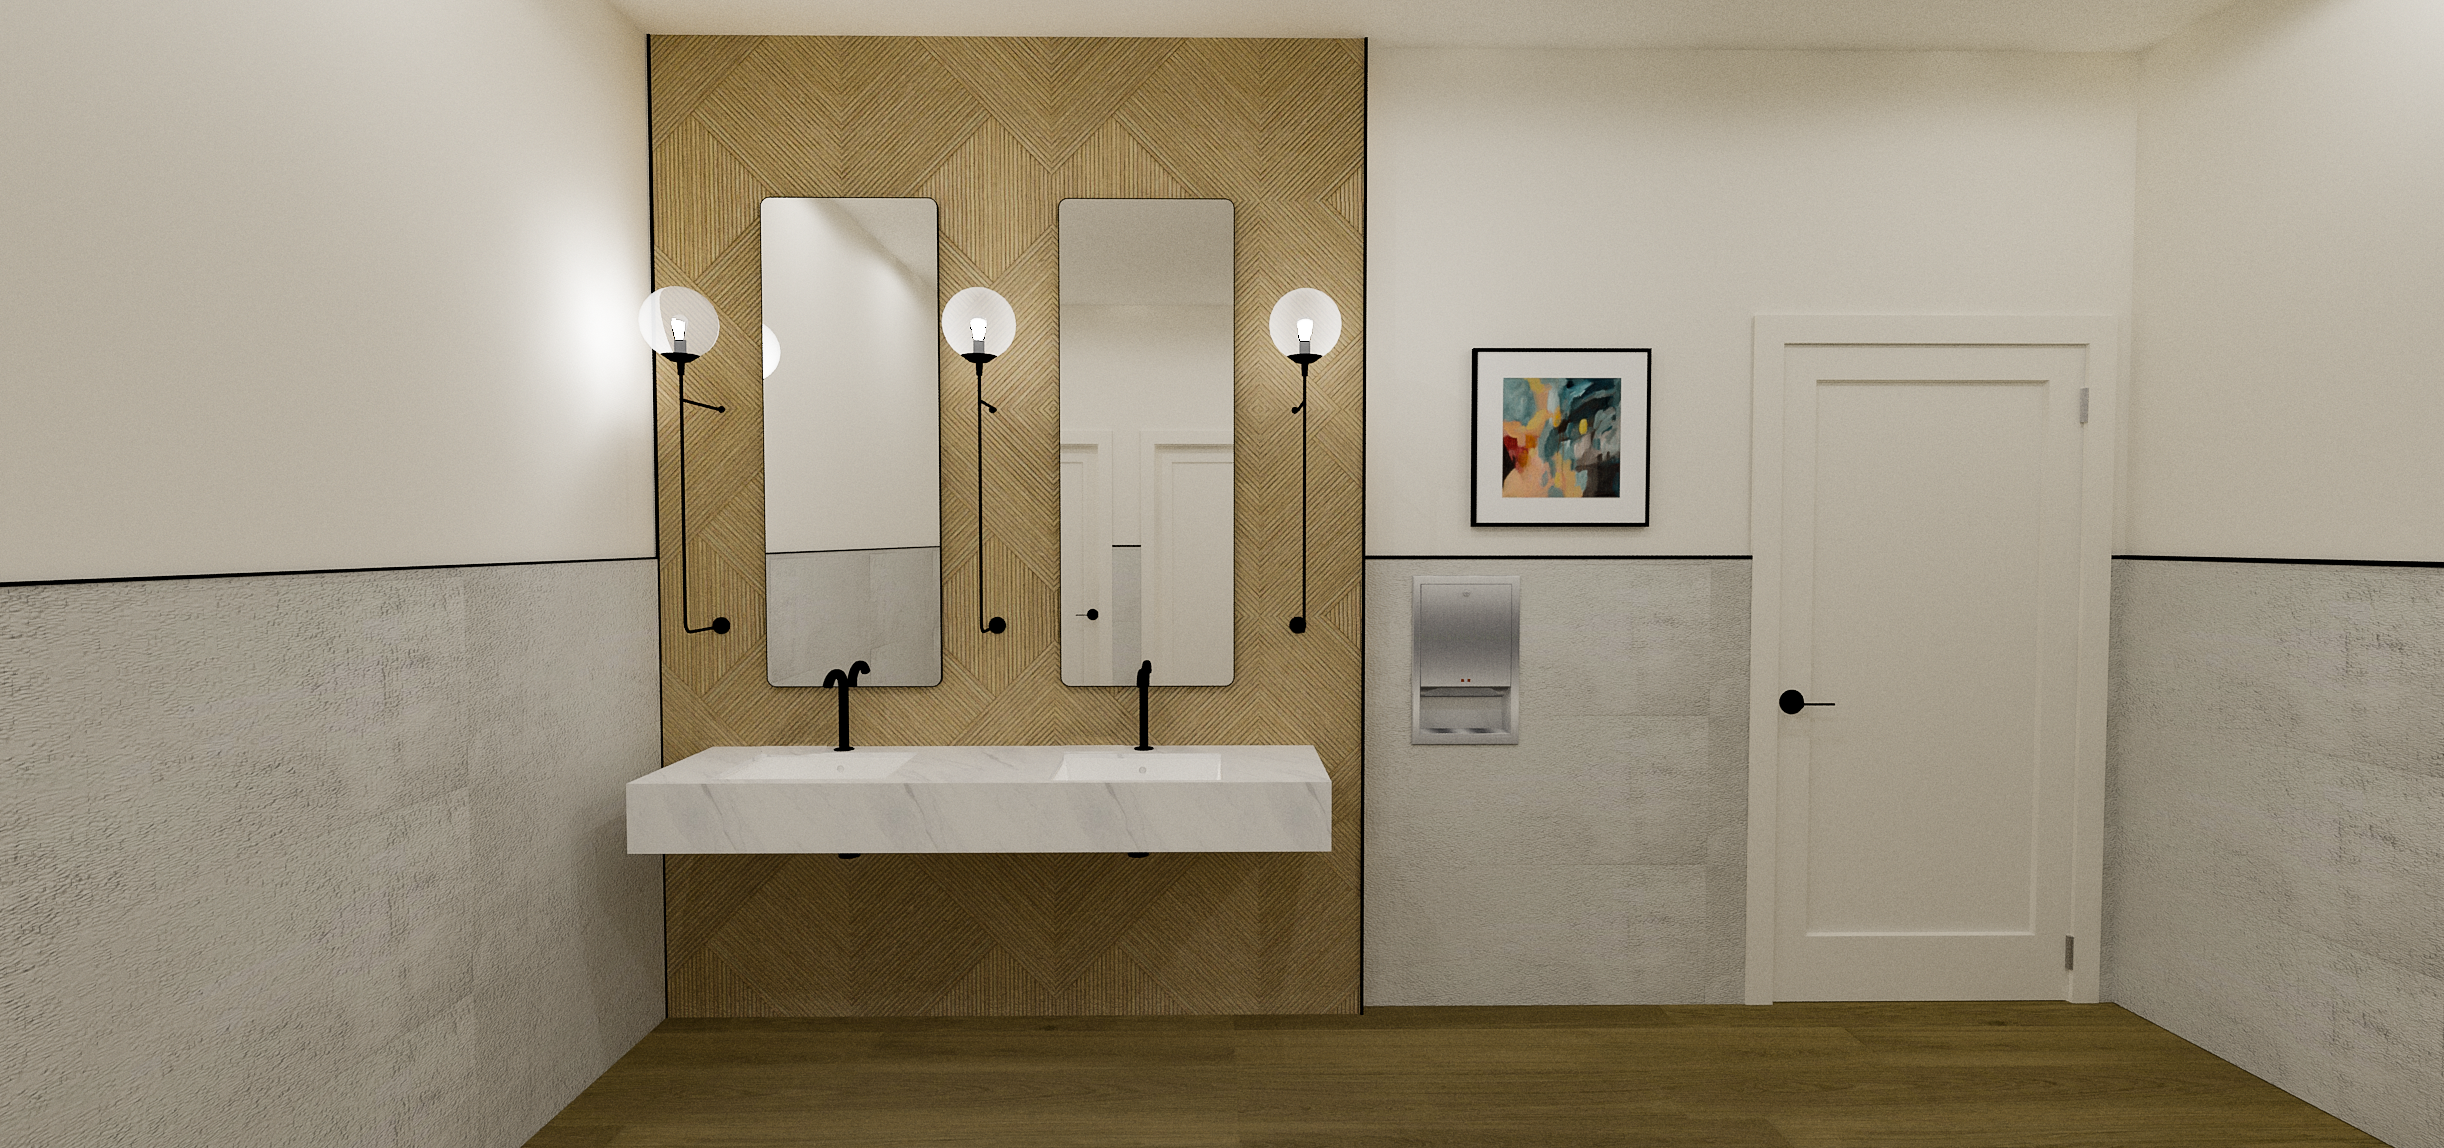 Sola Salons Contemporary Bathroom Concept | Designed by Bell + Voy Design Co..png